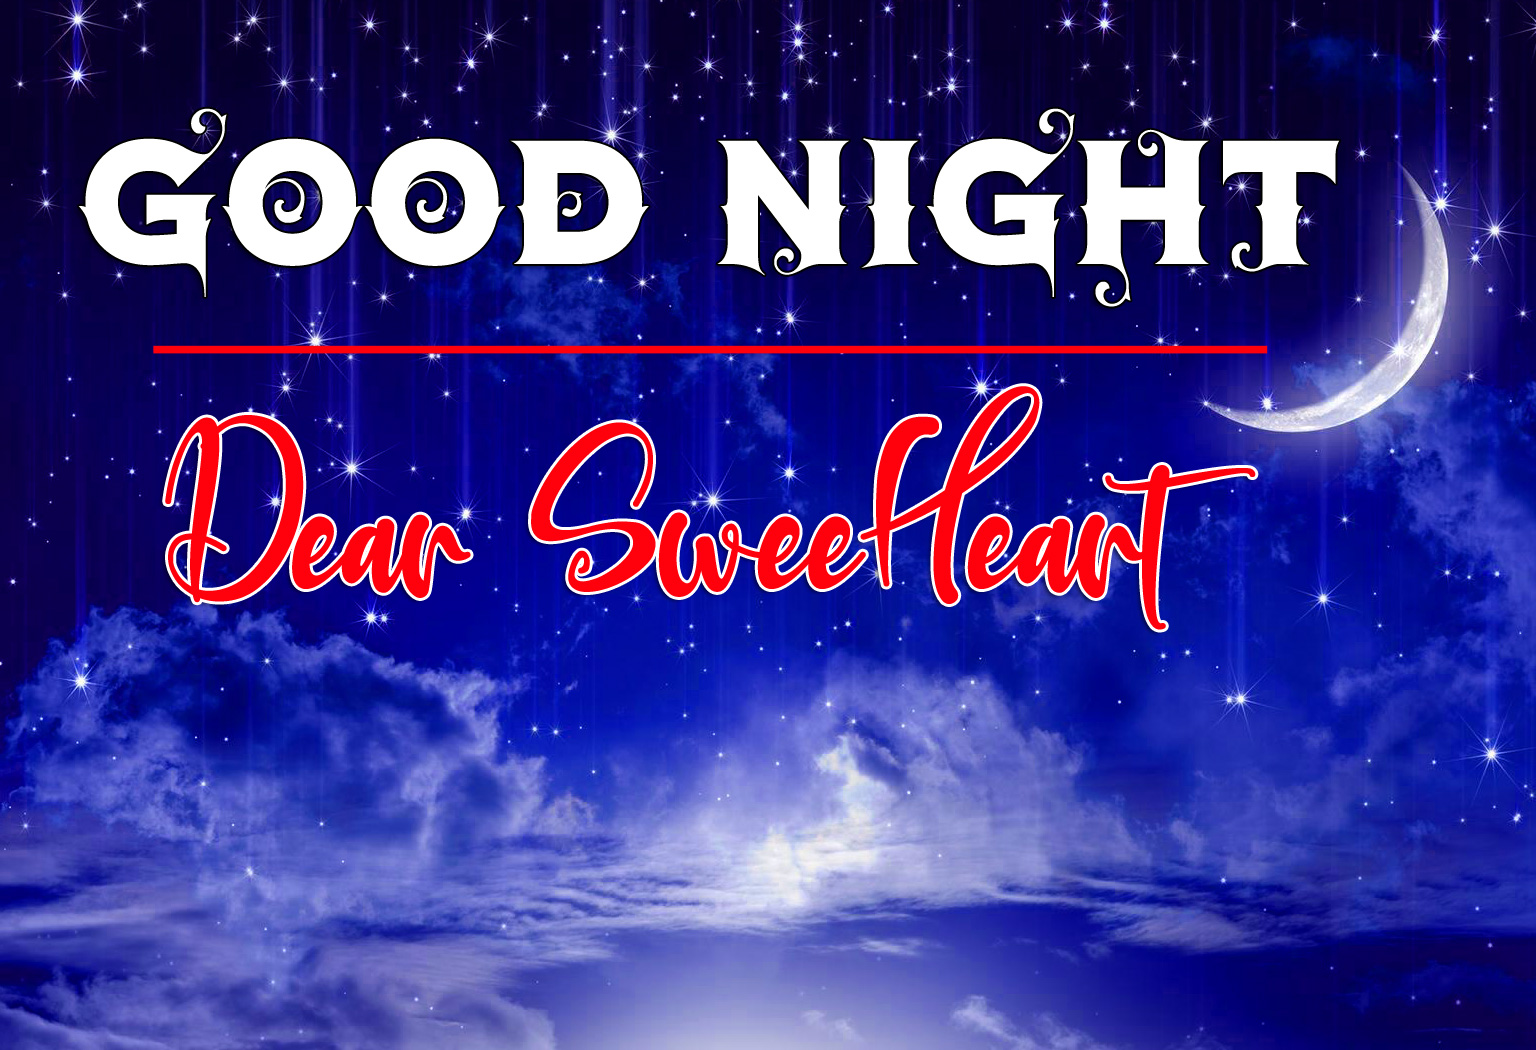 4k Good Night Images Pics With Sweet Heart